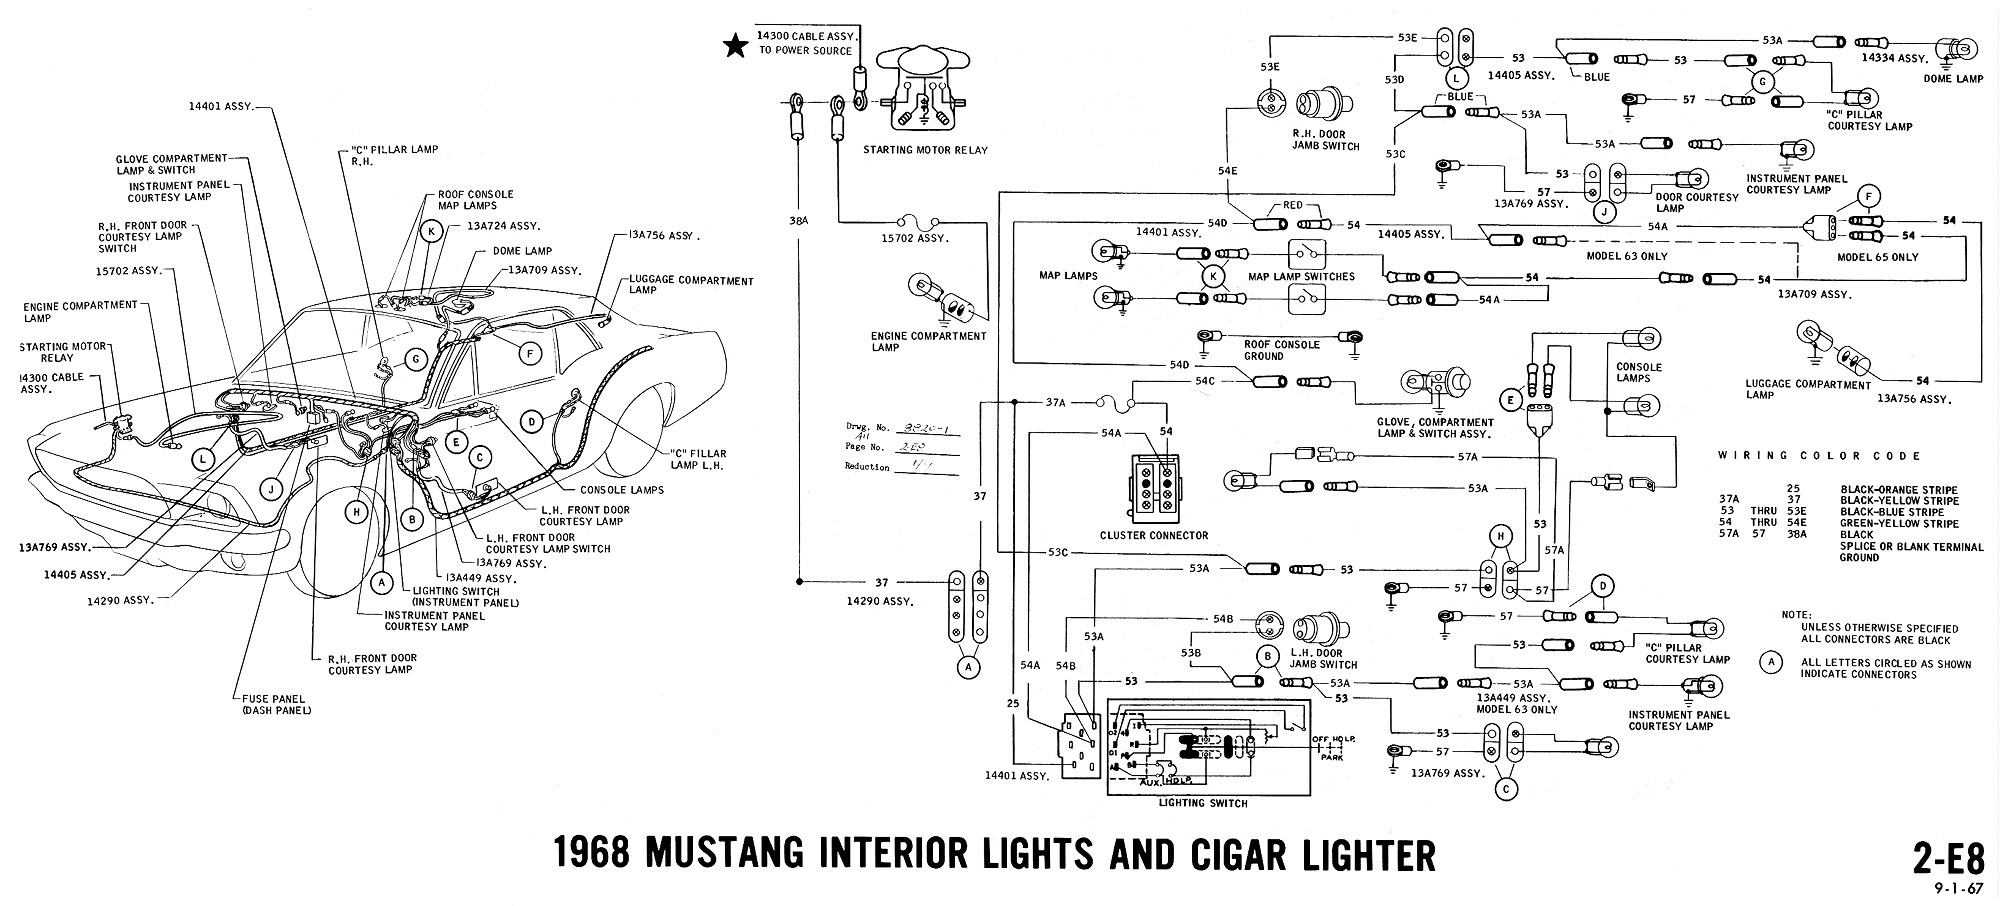 1968 mustang ignition wiring diagram